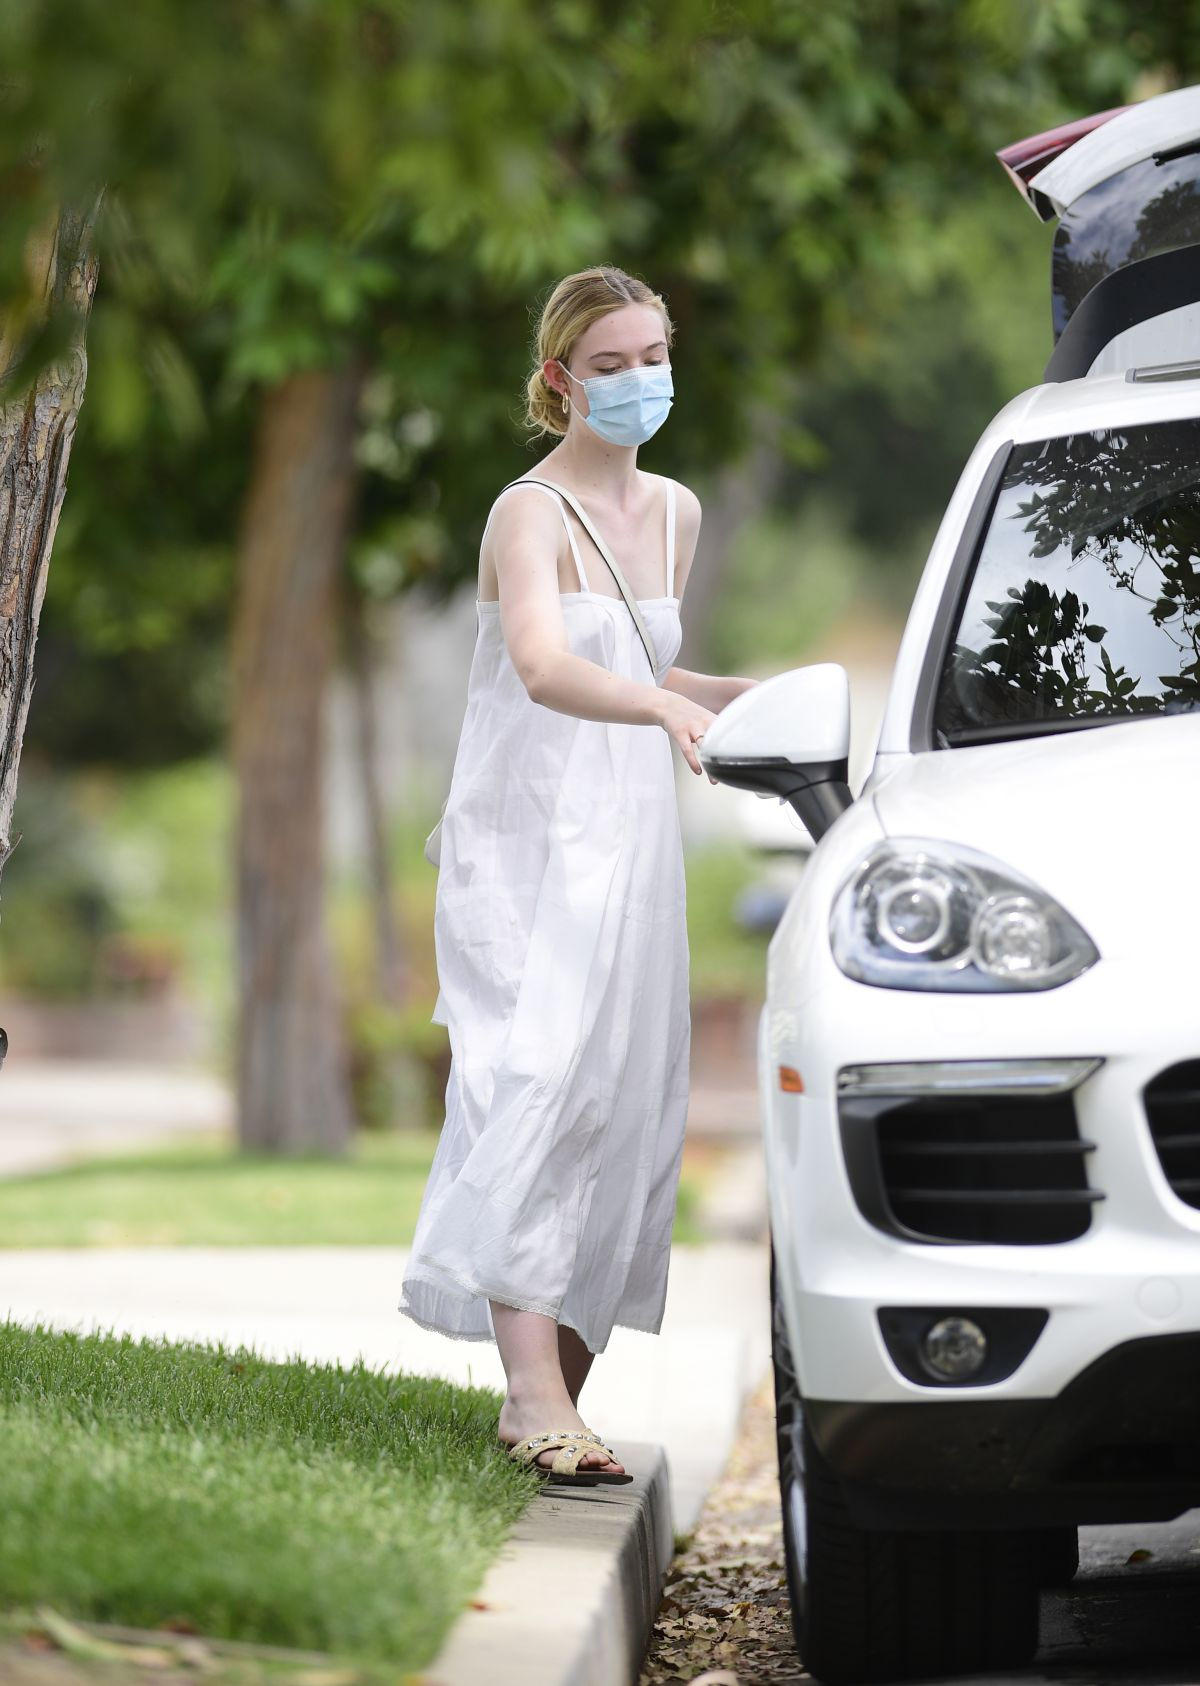 Elle Fanning Out About Los Angeles